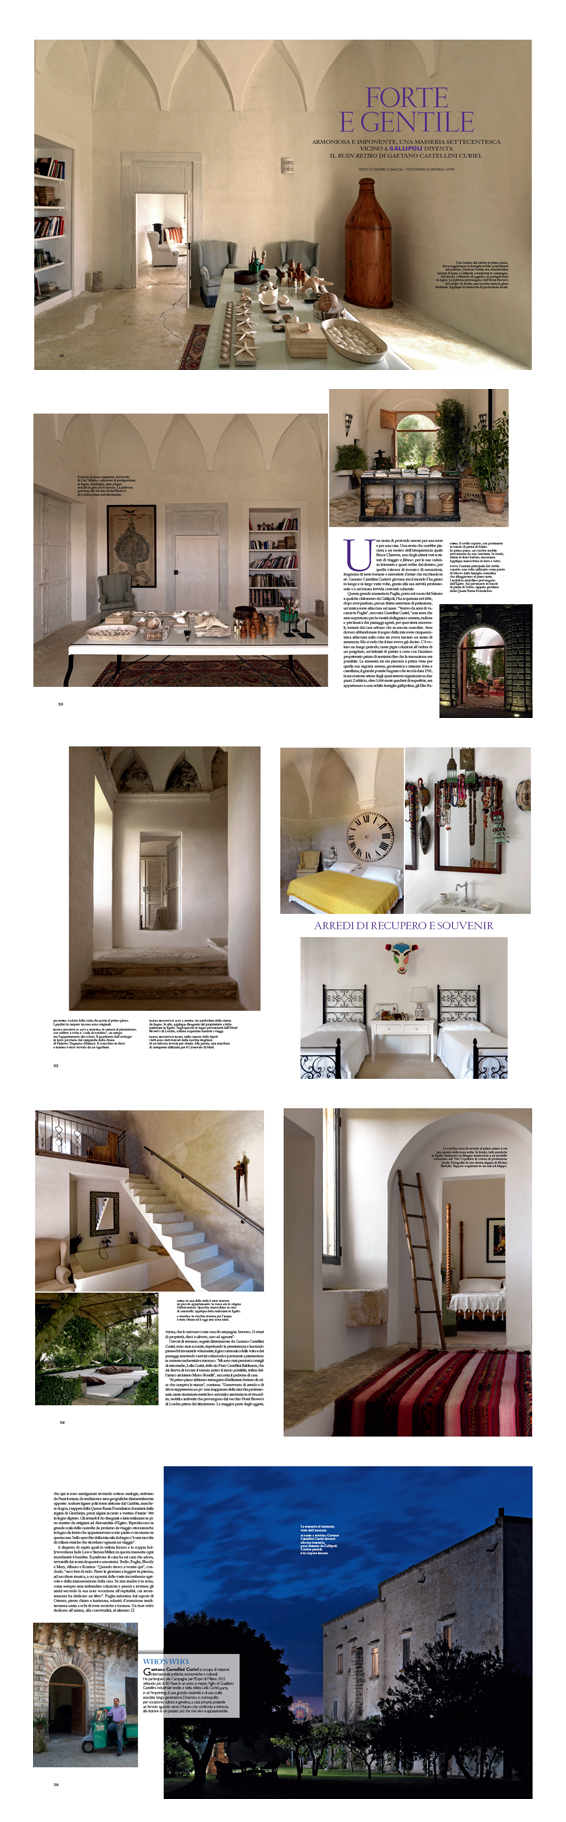 Villa Elia featured in the July 2011 edition of Architectural Digest | Think Puglia